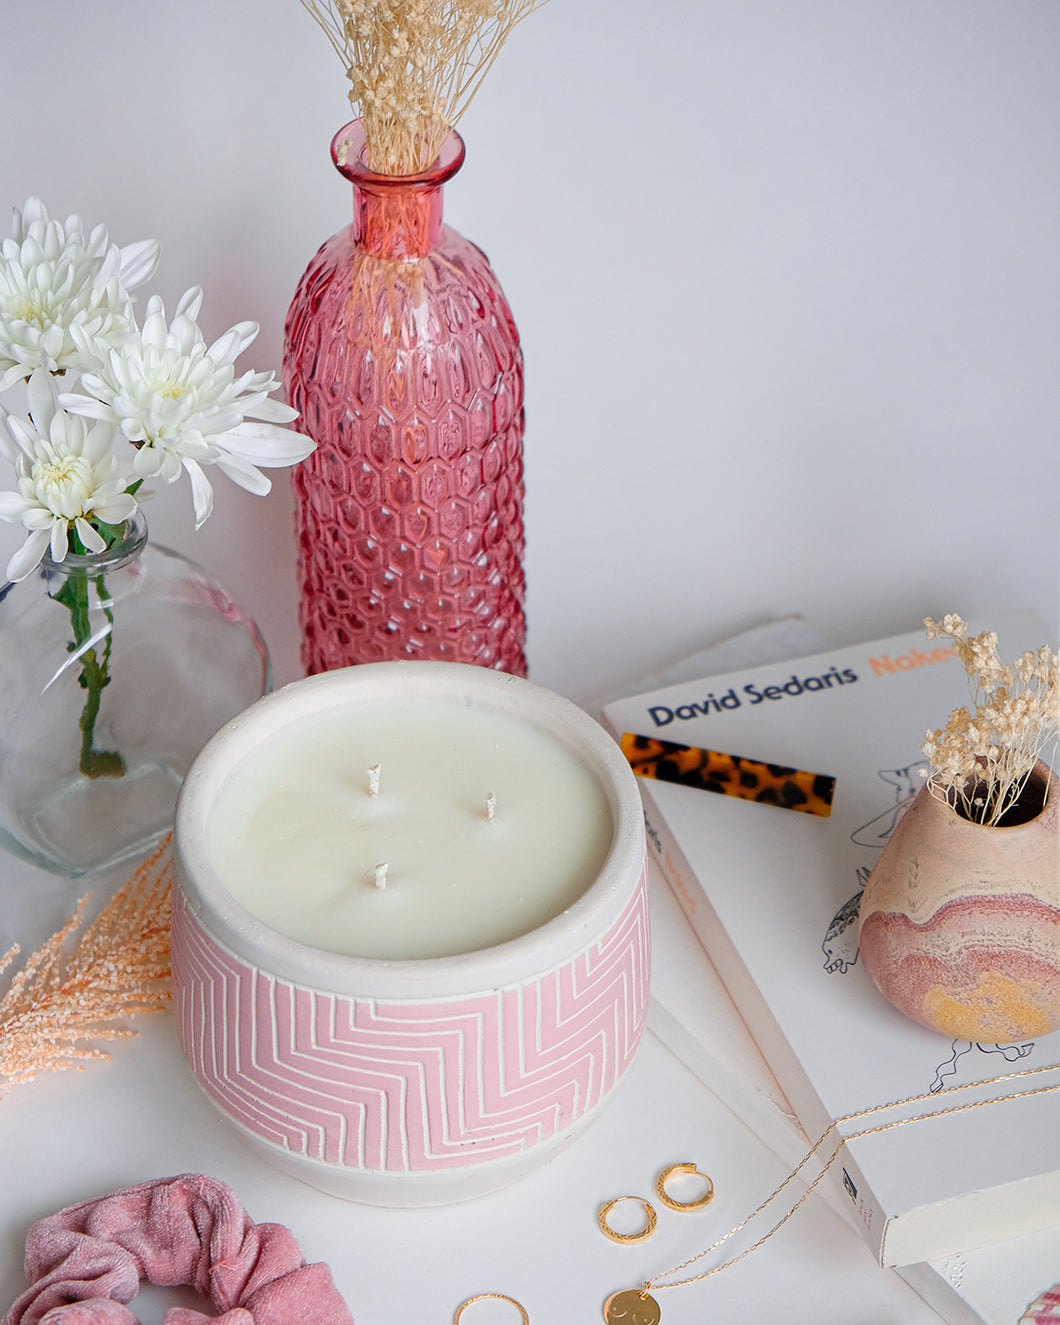 3-Wick Candle in Pink Plant Pot